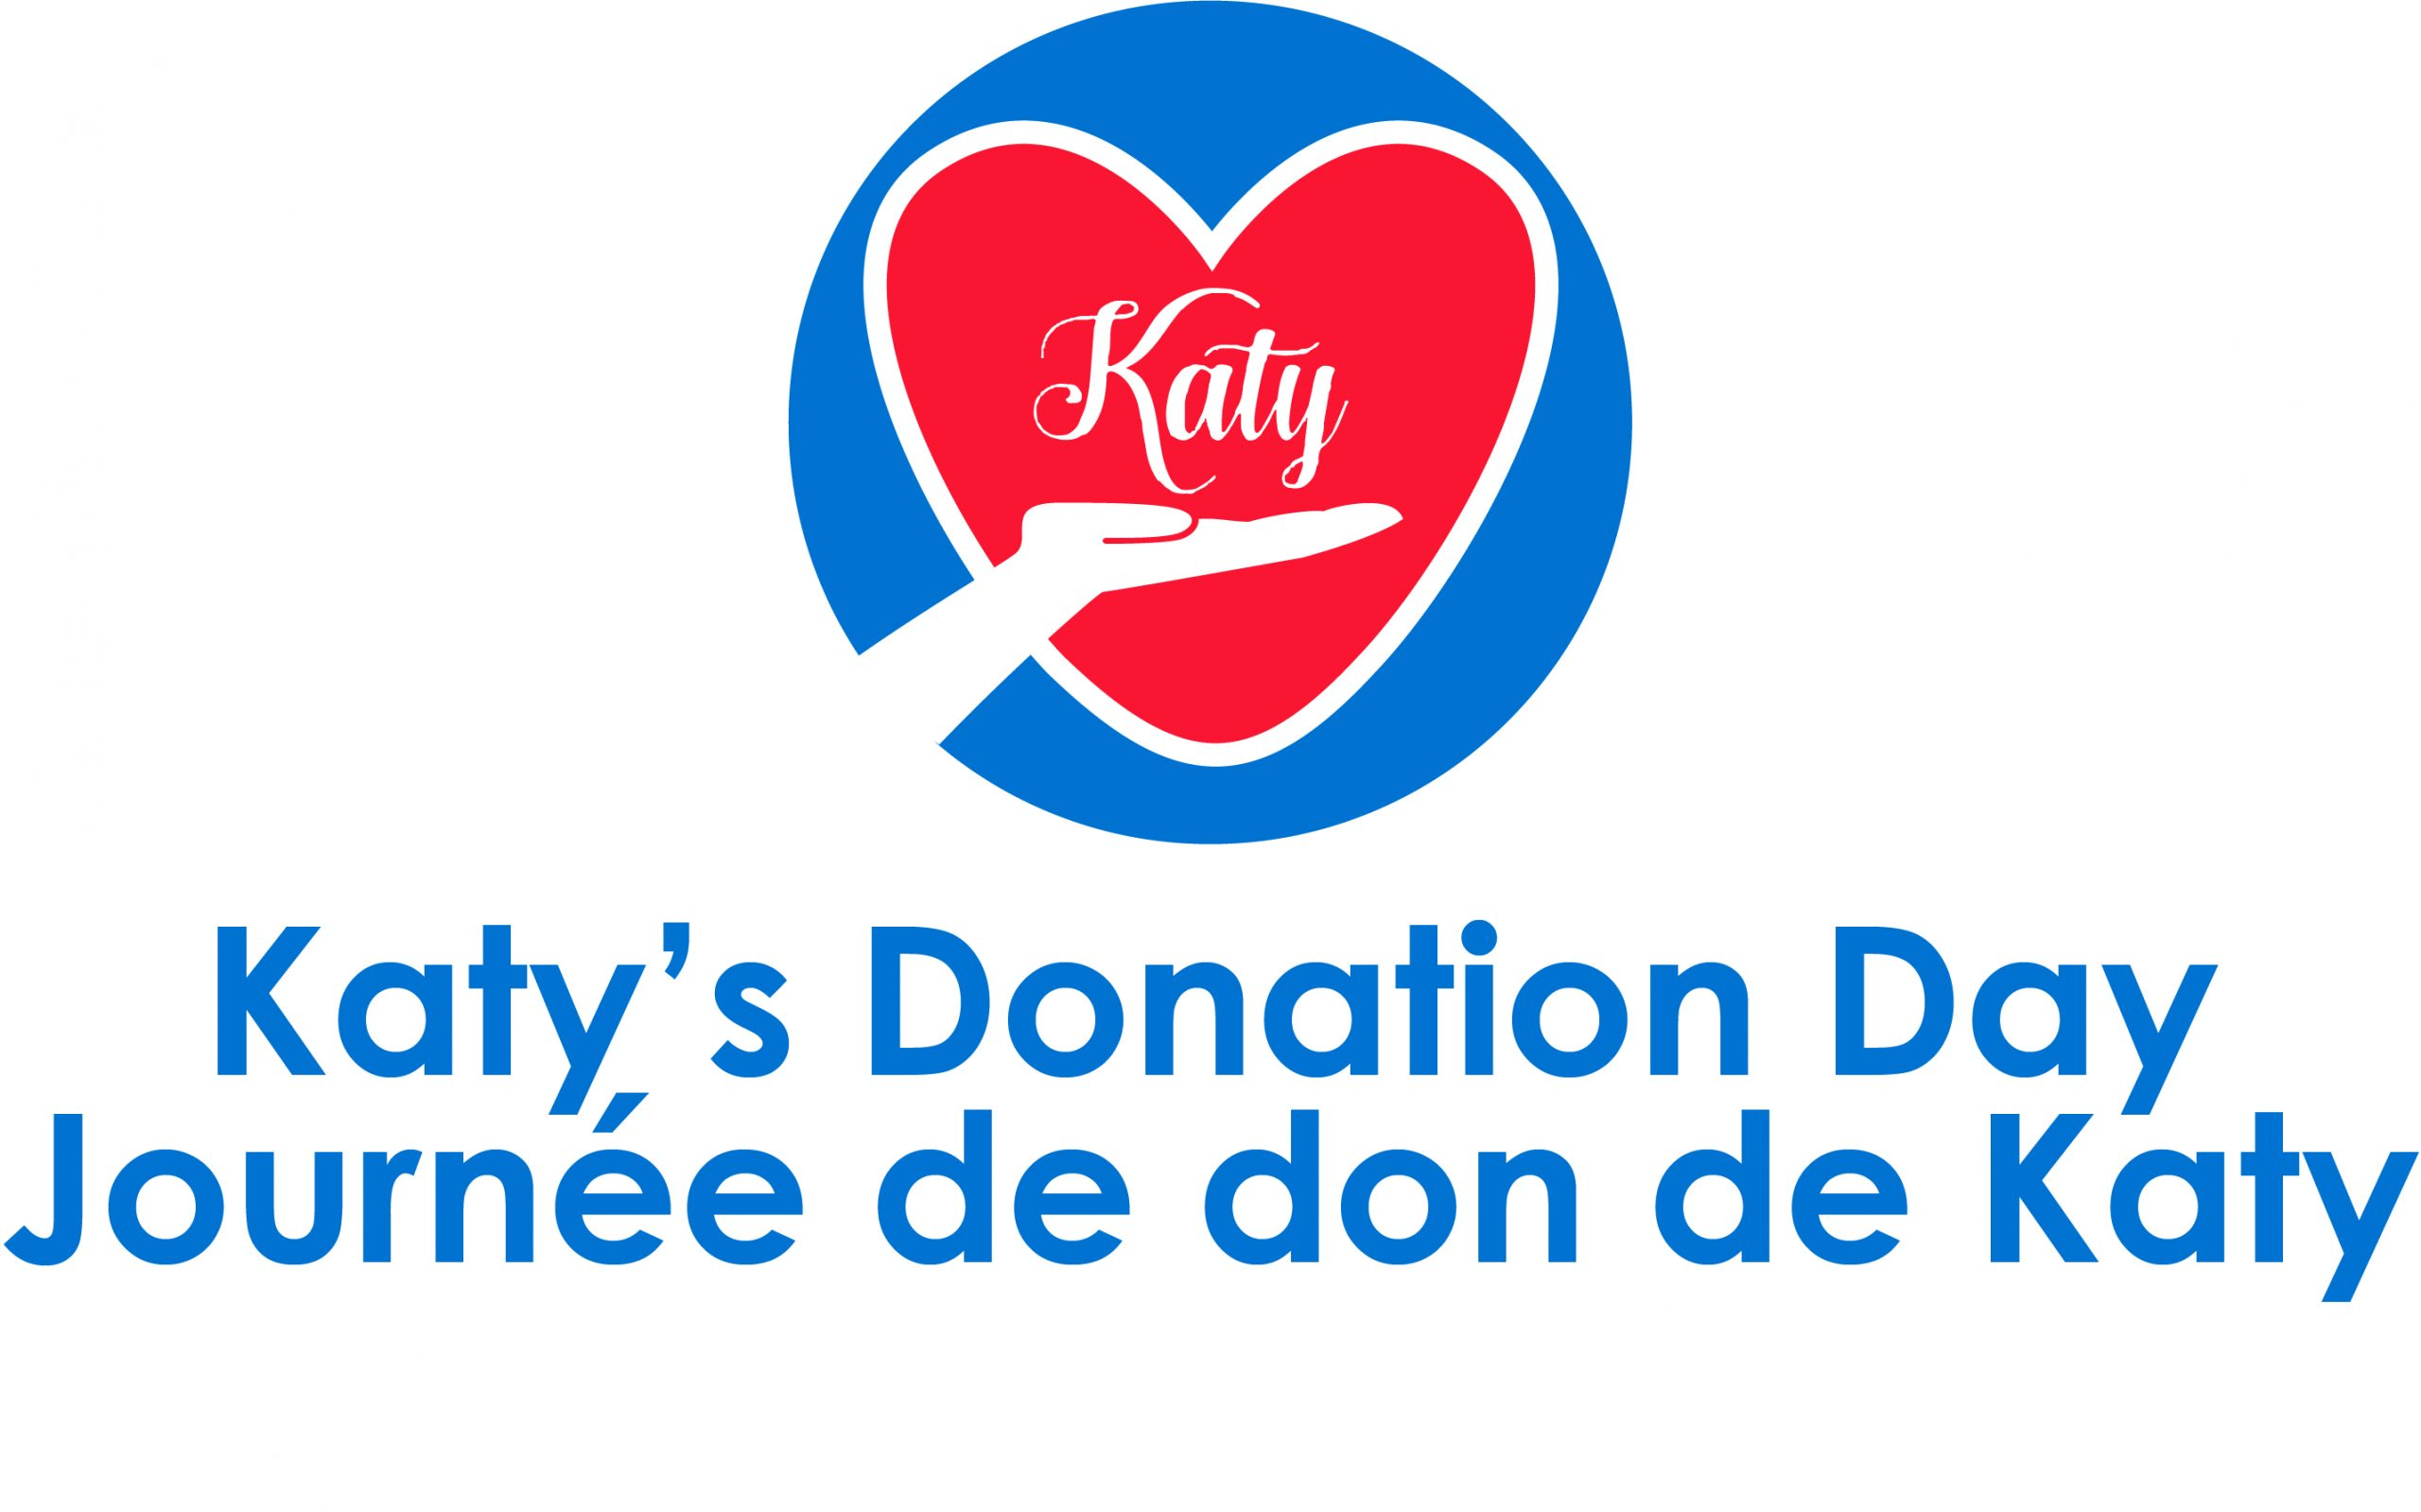 Katy's Donation Day Web Banner